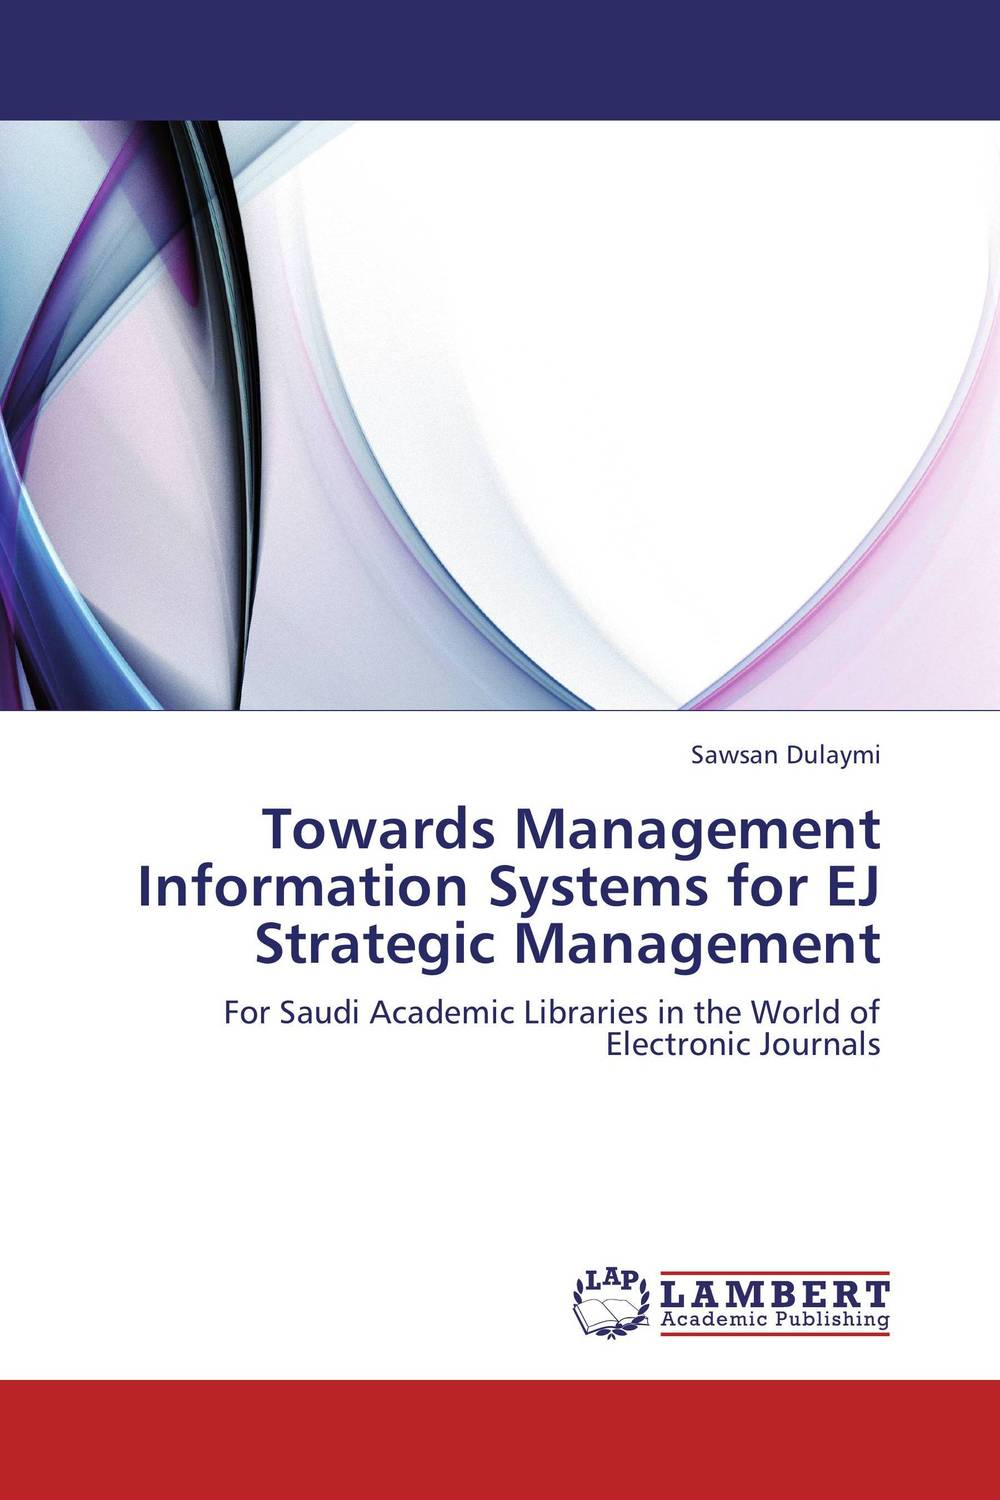 Towards Management Information Systems for EJ Strategic Management point systems migration policy and international students flow